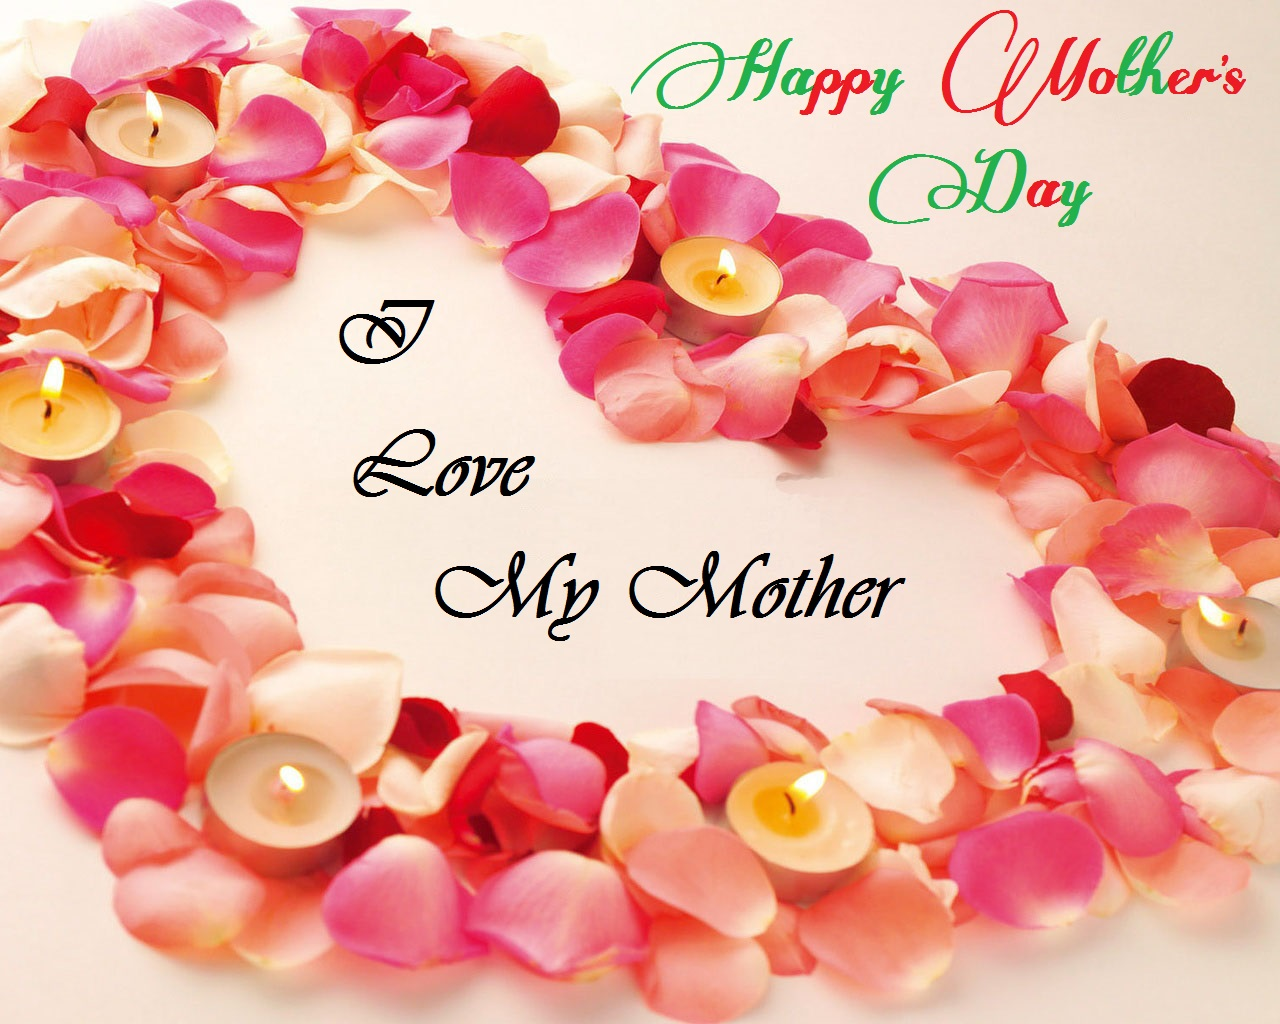 14 Happy Mothers Day Wallpaper Background 2015   Educational 1280x1024